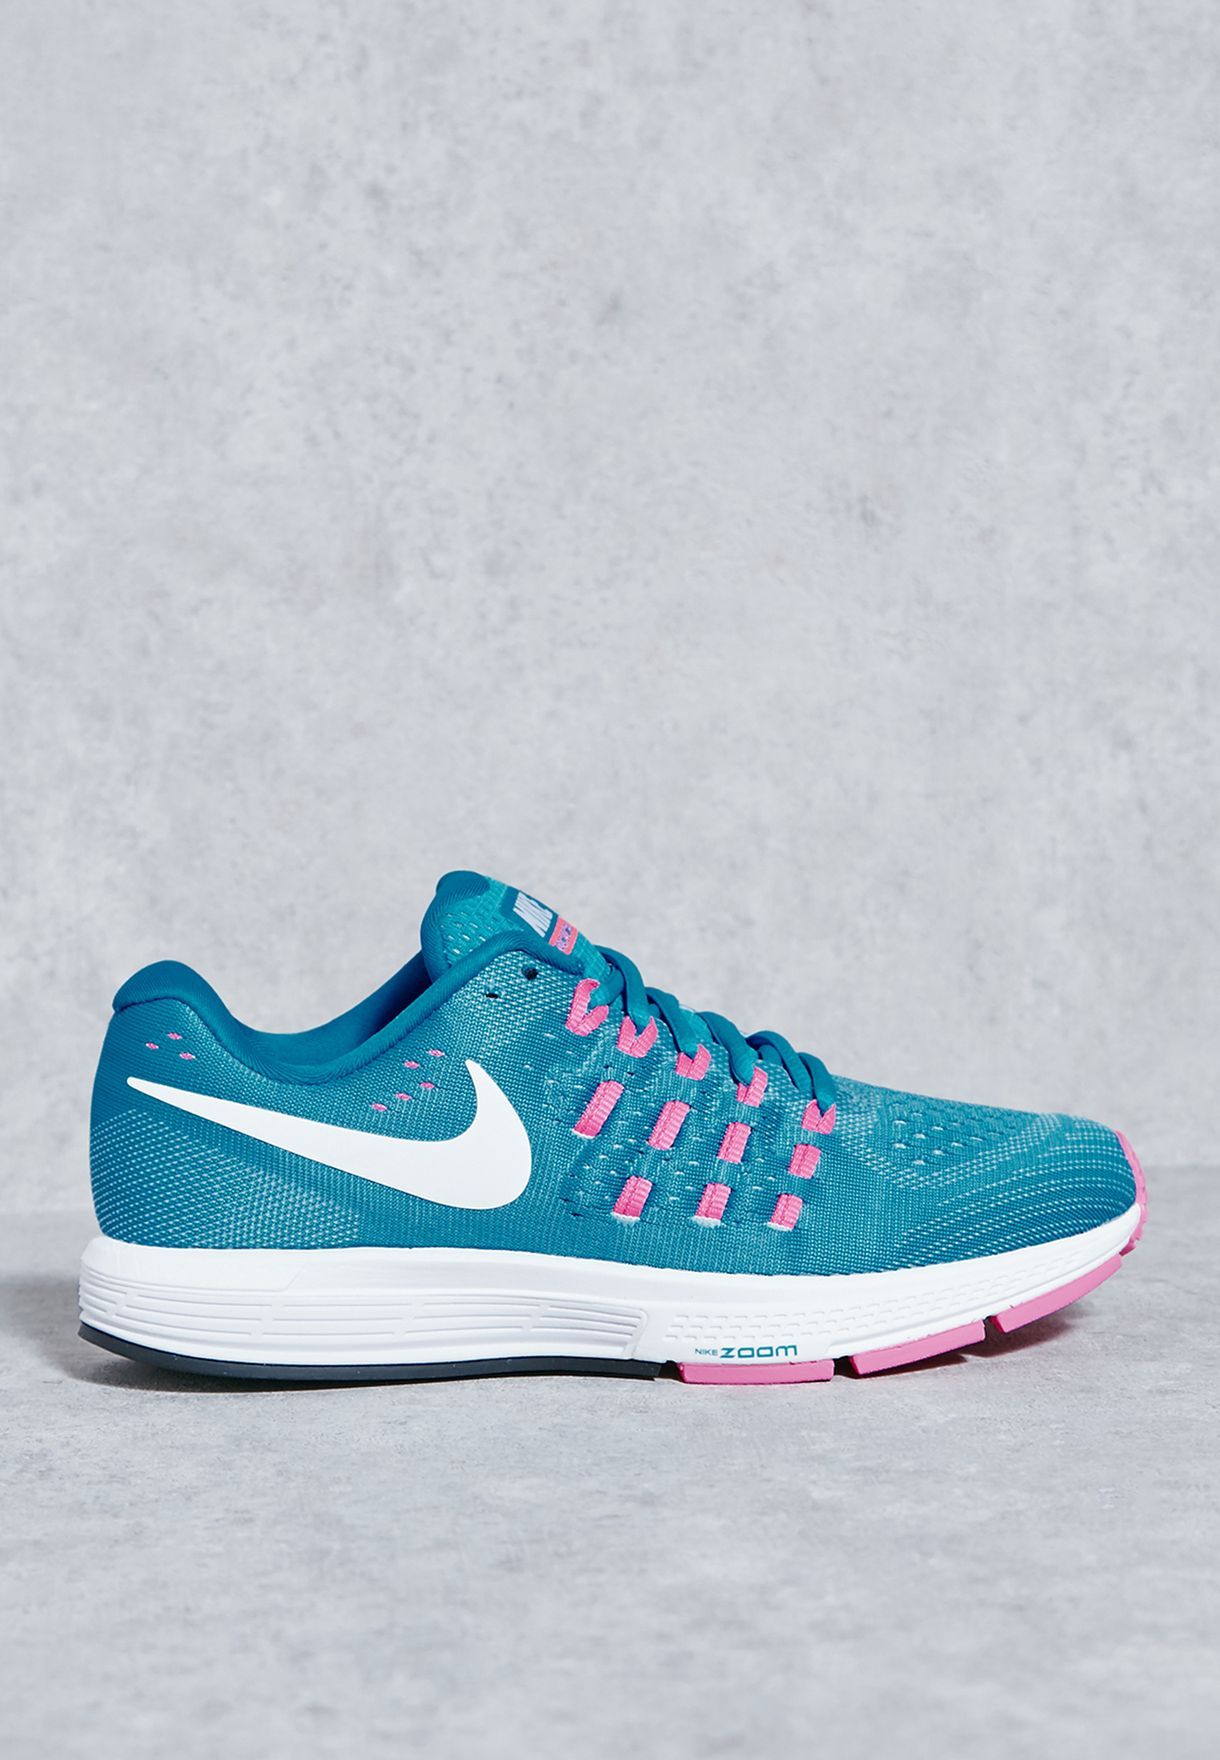 63137db70884 Shop Nike blue Air Zoom Vomero 11 818100-401 for Women in UAE ...